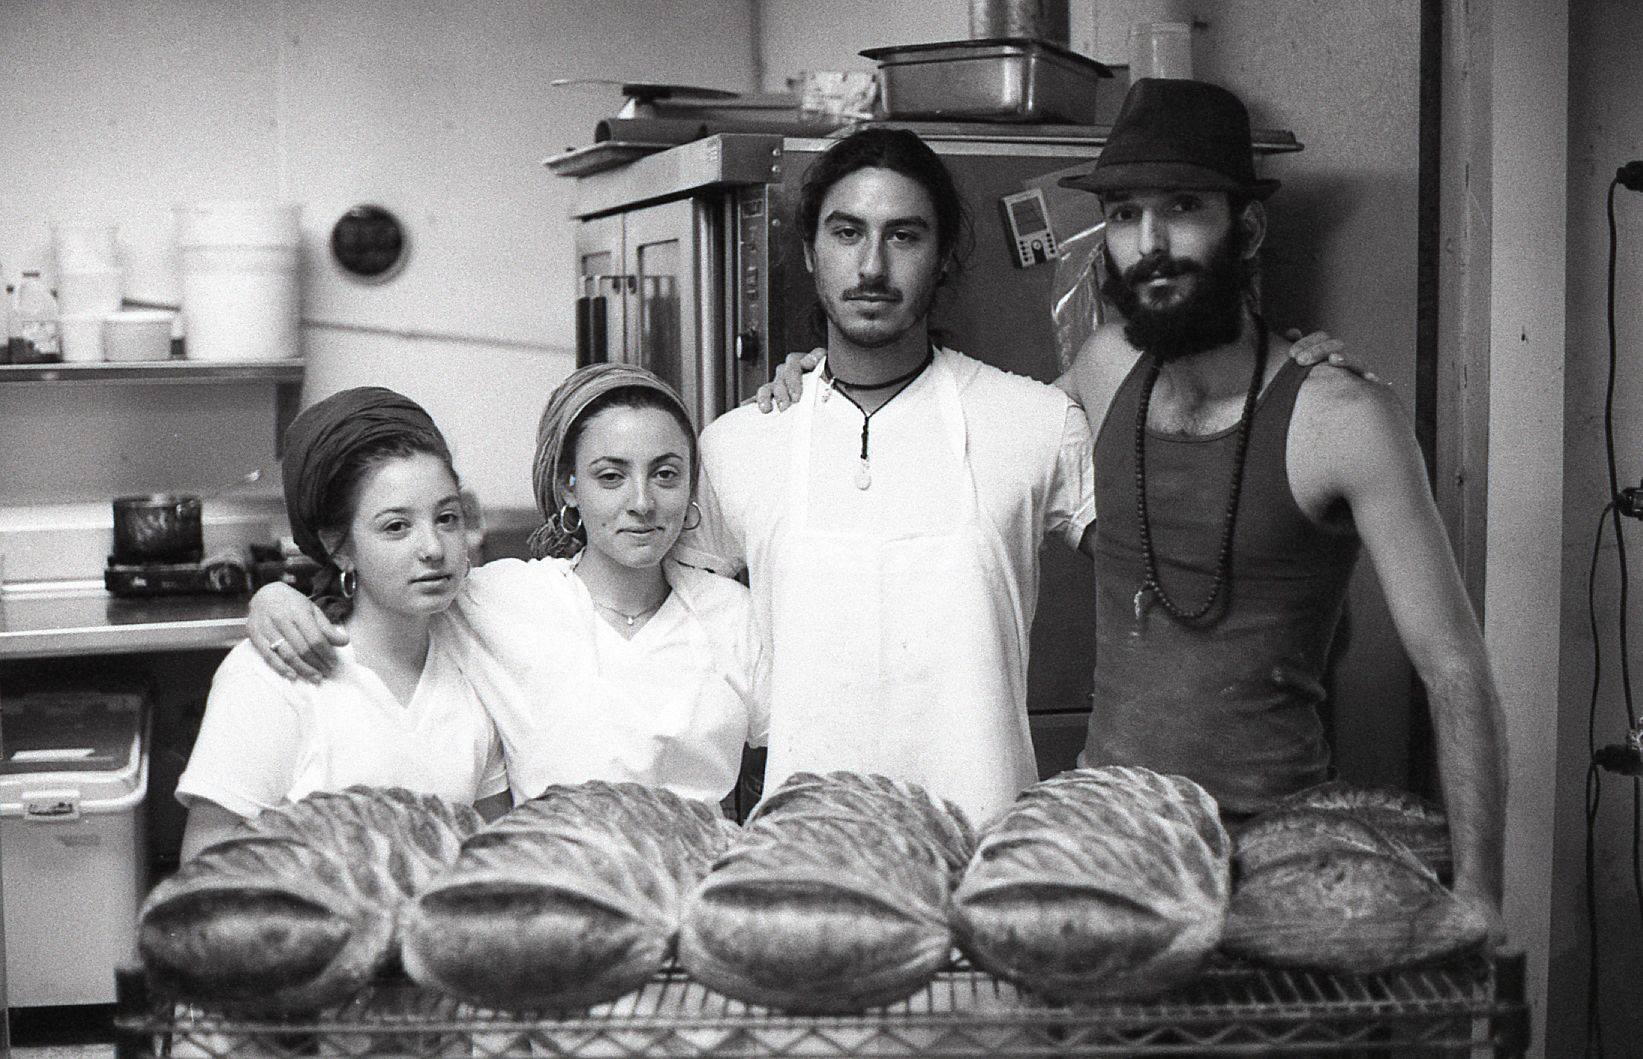 Zak and his Israeli gang of bread makers